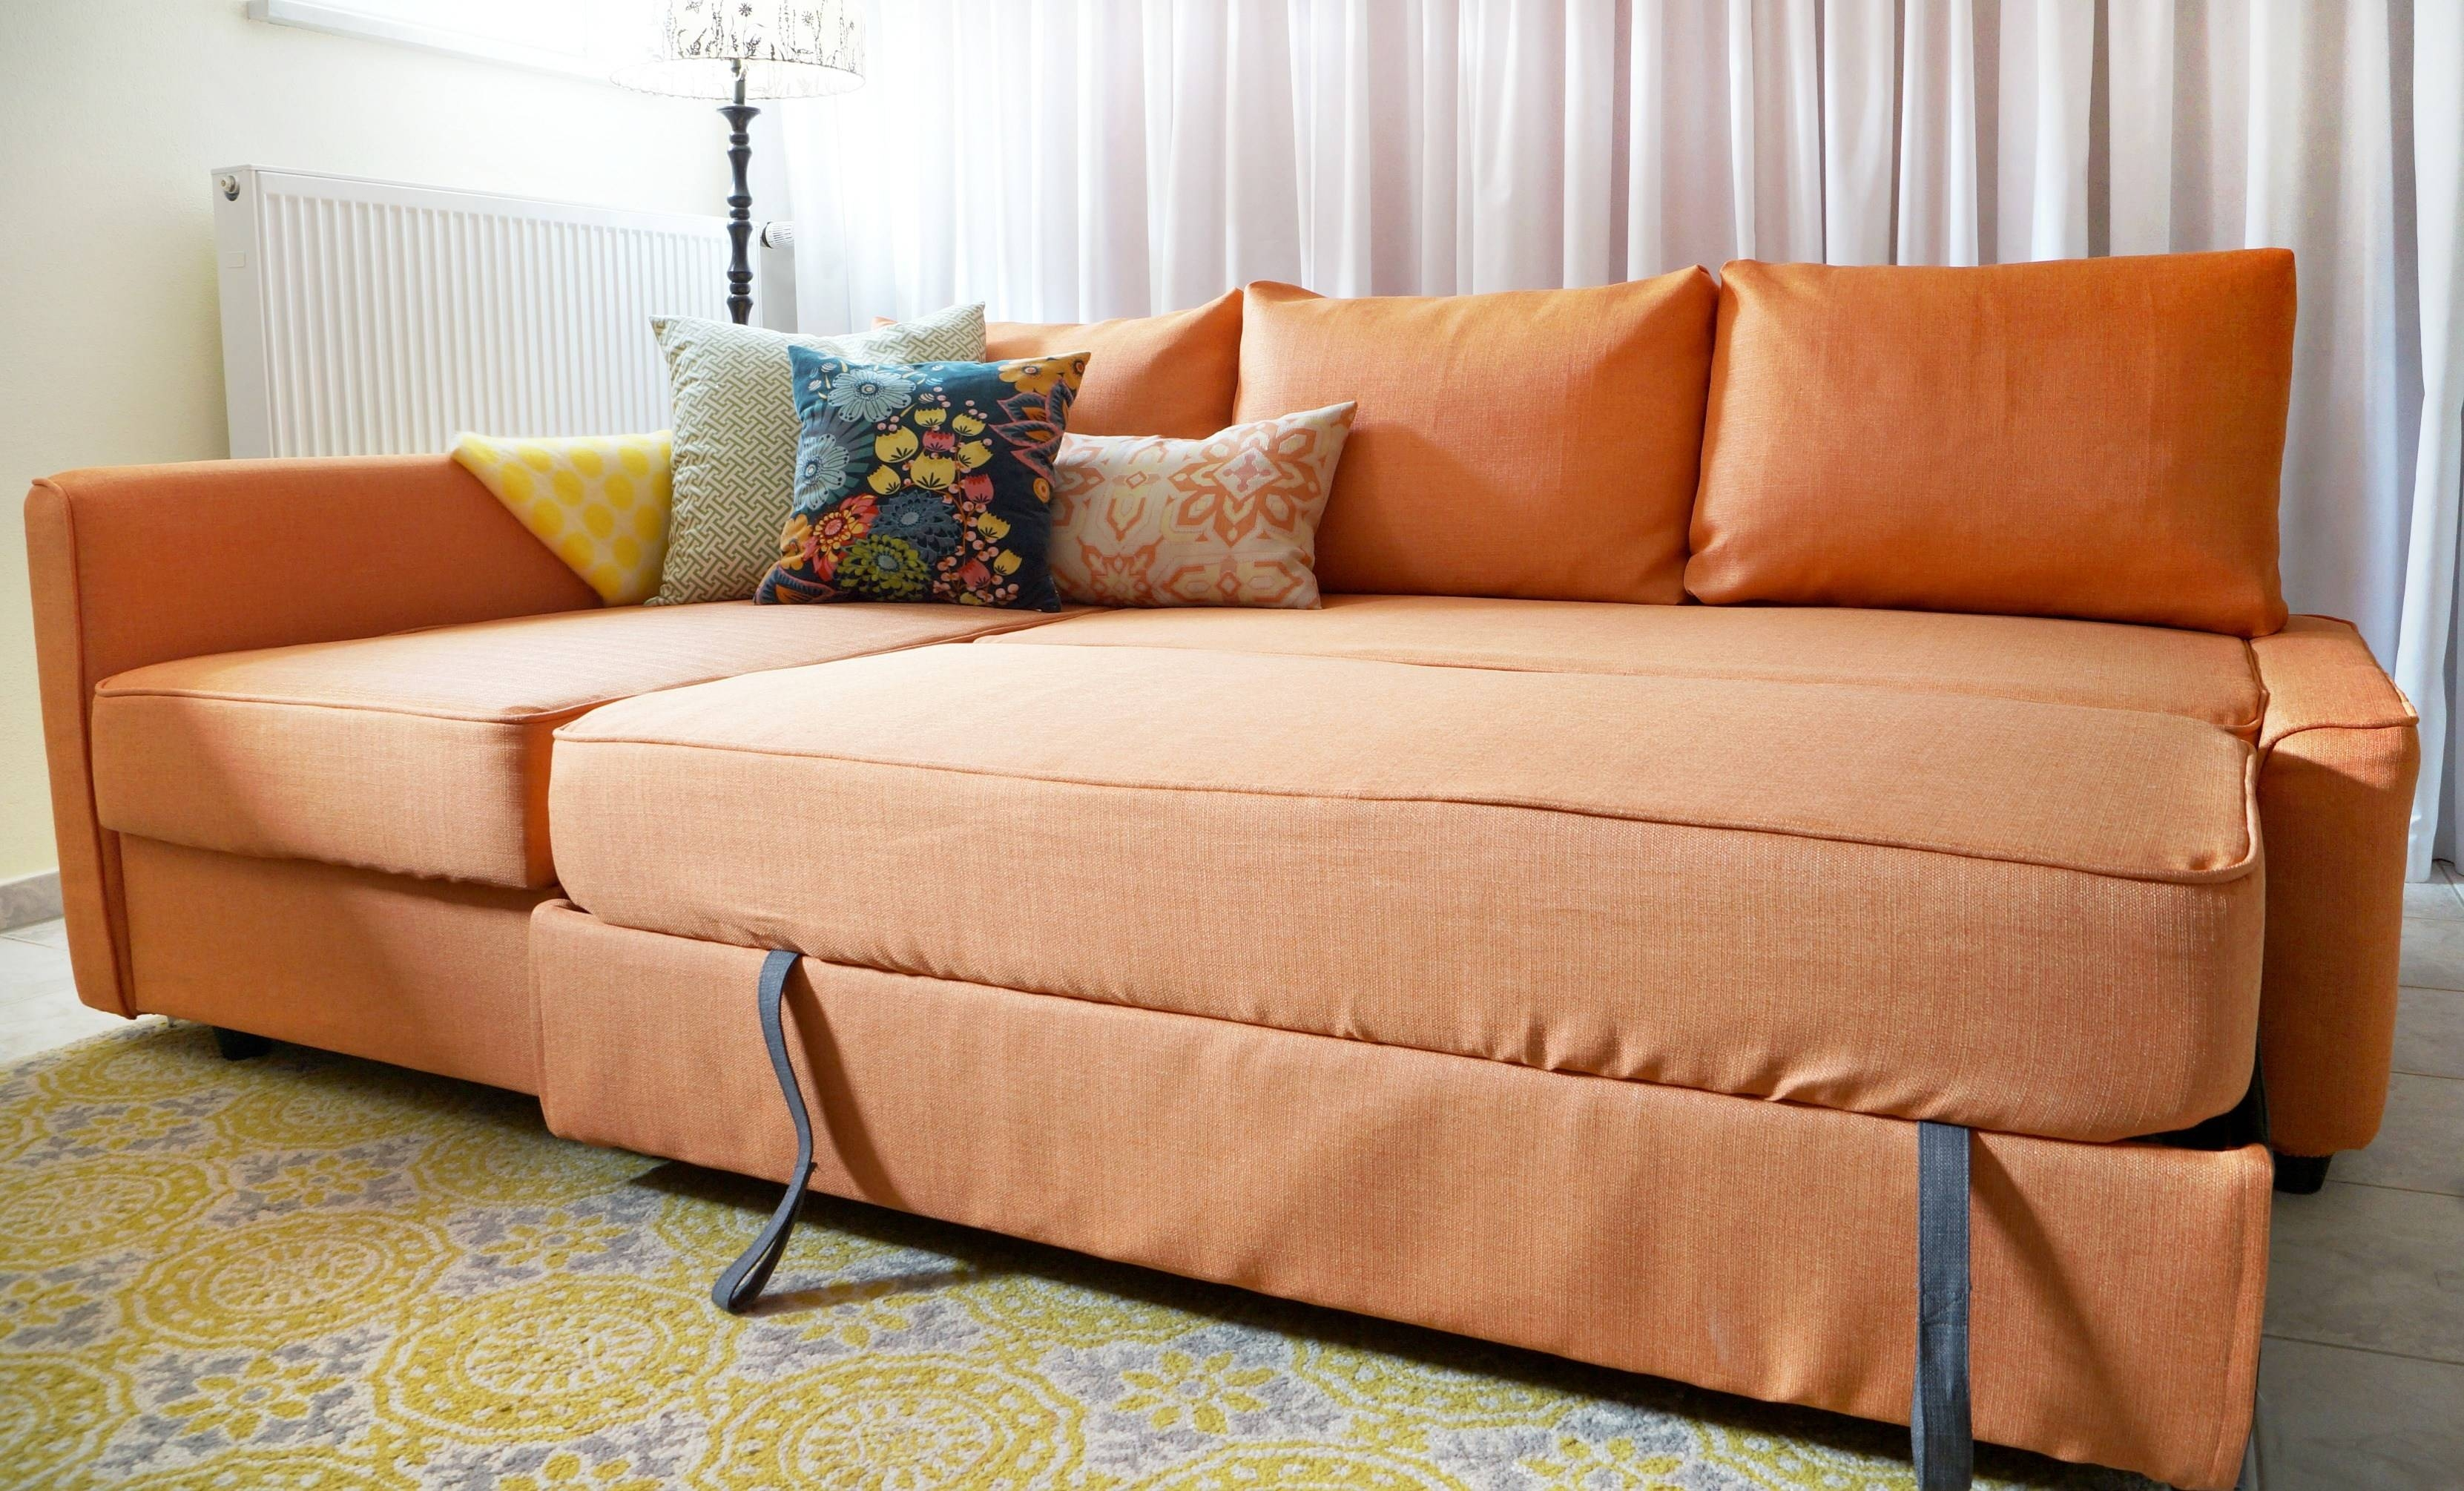 Comfort Works Friheten Slipcover Review in Orange Ikea Sofas (Image 5 of 30)